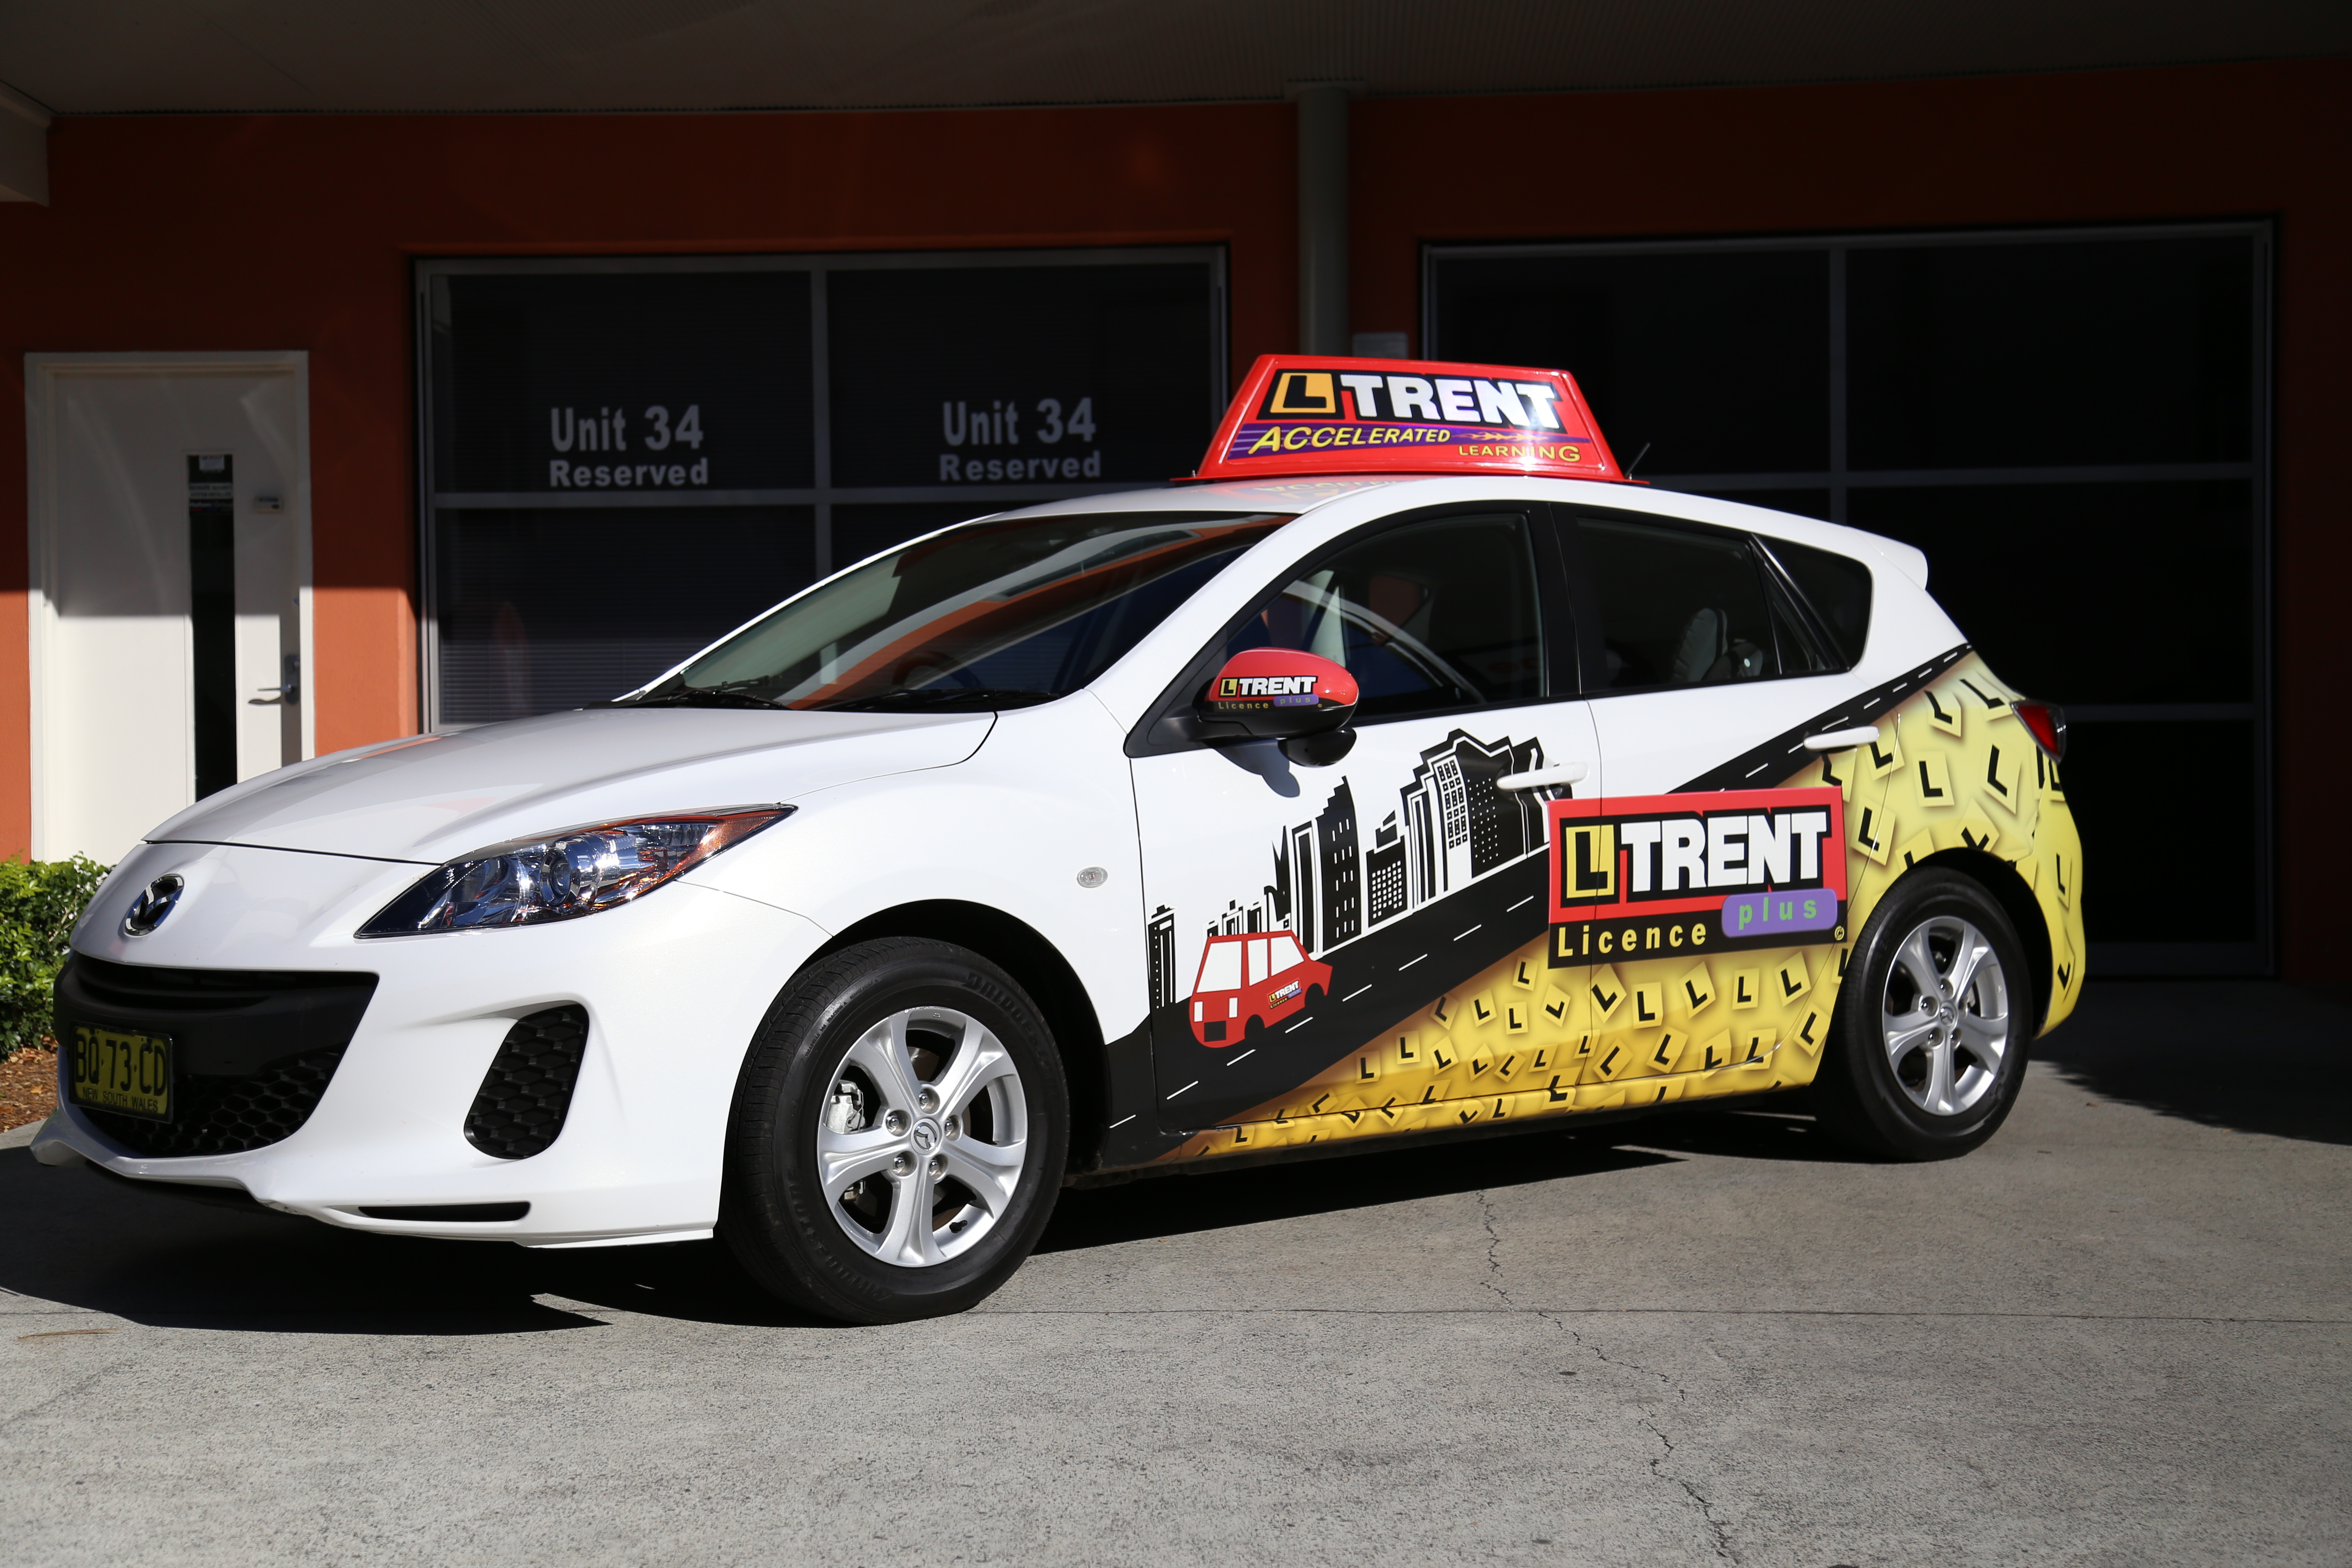 LTrent Driving School Wollongong | Wollongong, New South Wales 2500 | +61 2 8748 4500